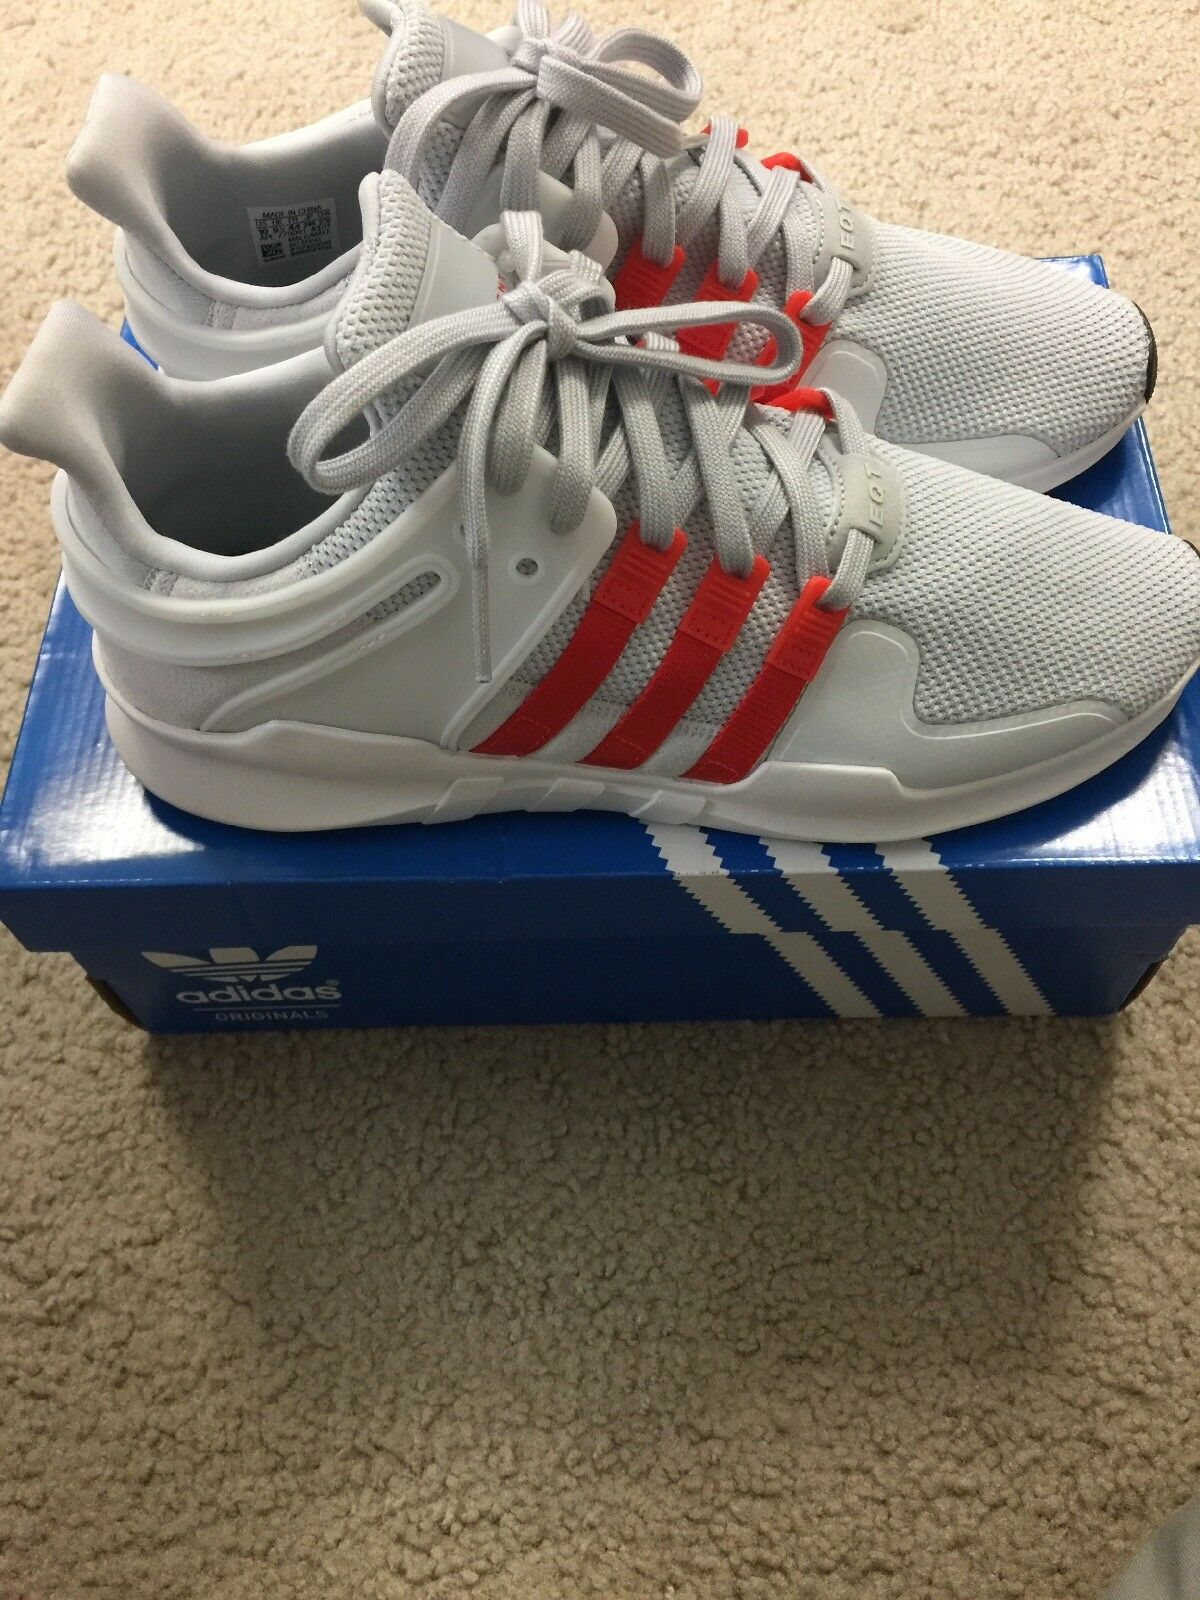 Adidas EQT Support ADV BY9581 (size 10)